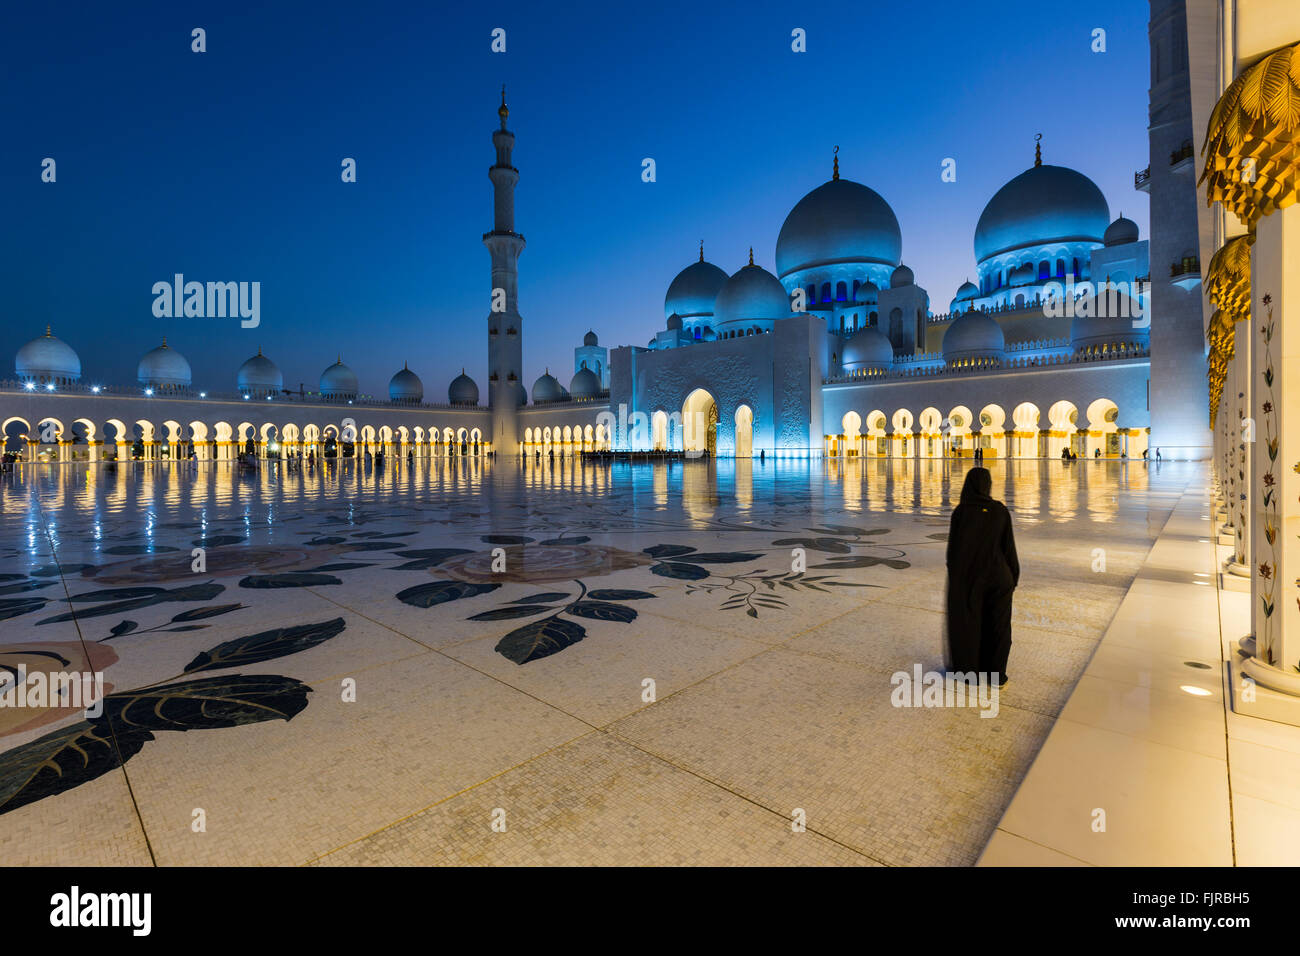 Sheikh Zayed Mosque, Sheikh Zayed Grand Mosque, Abu Dhabi, Emirate of Abu Dhabi, United Arab Emirates - Stock Image